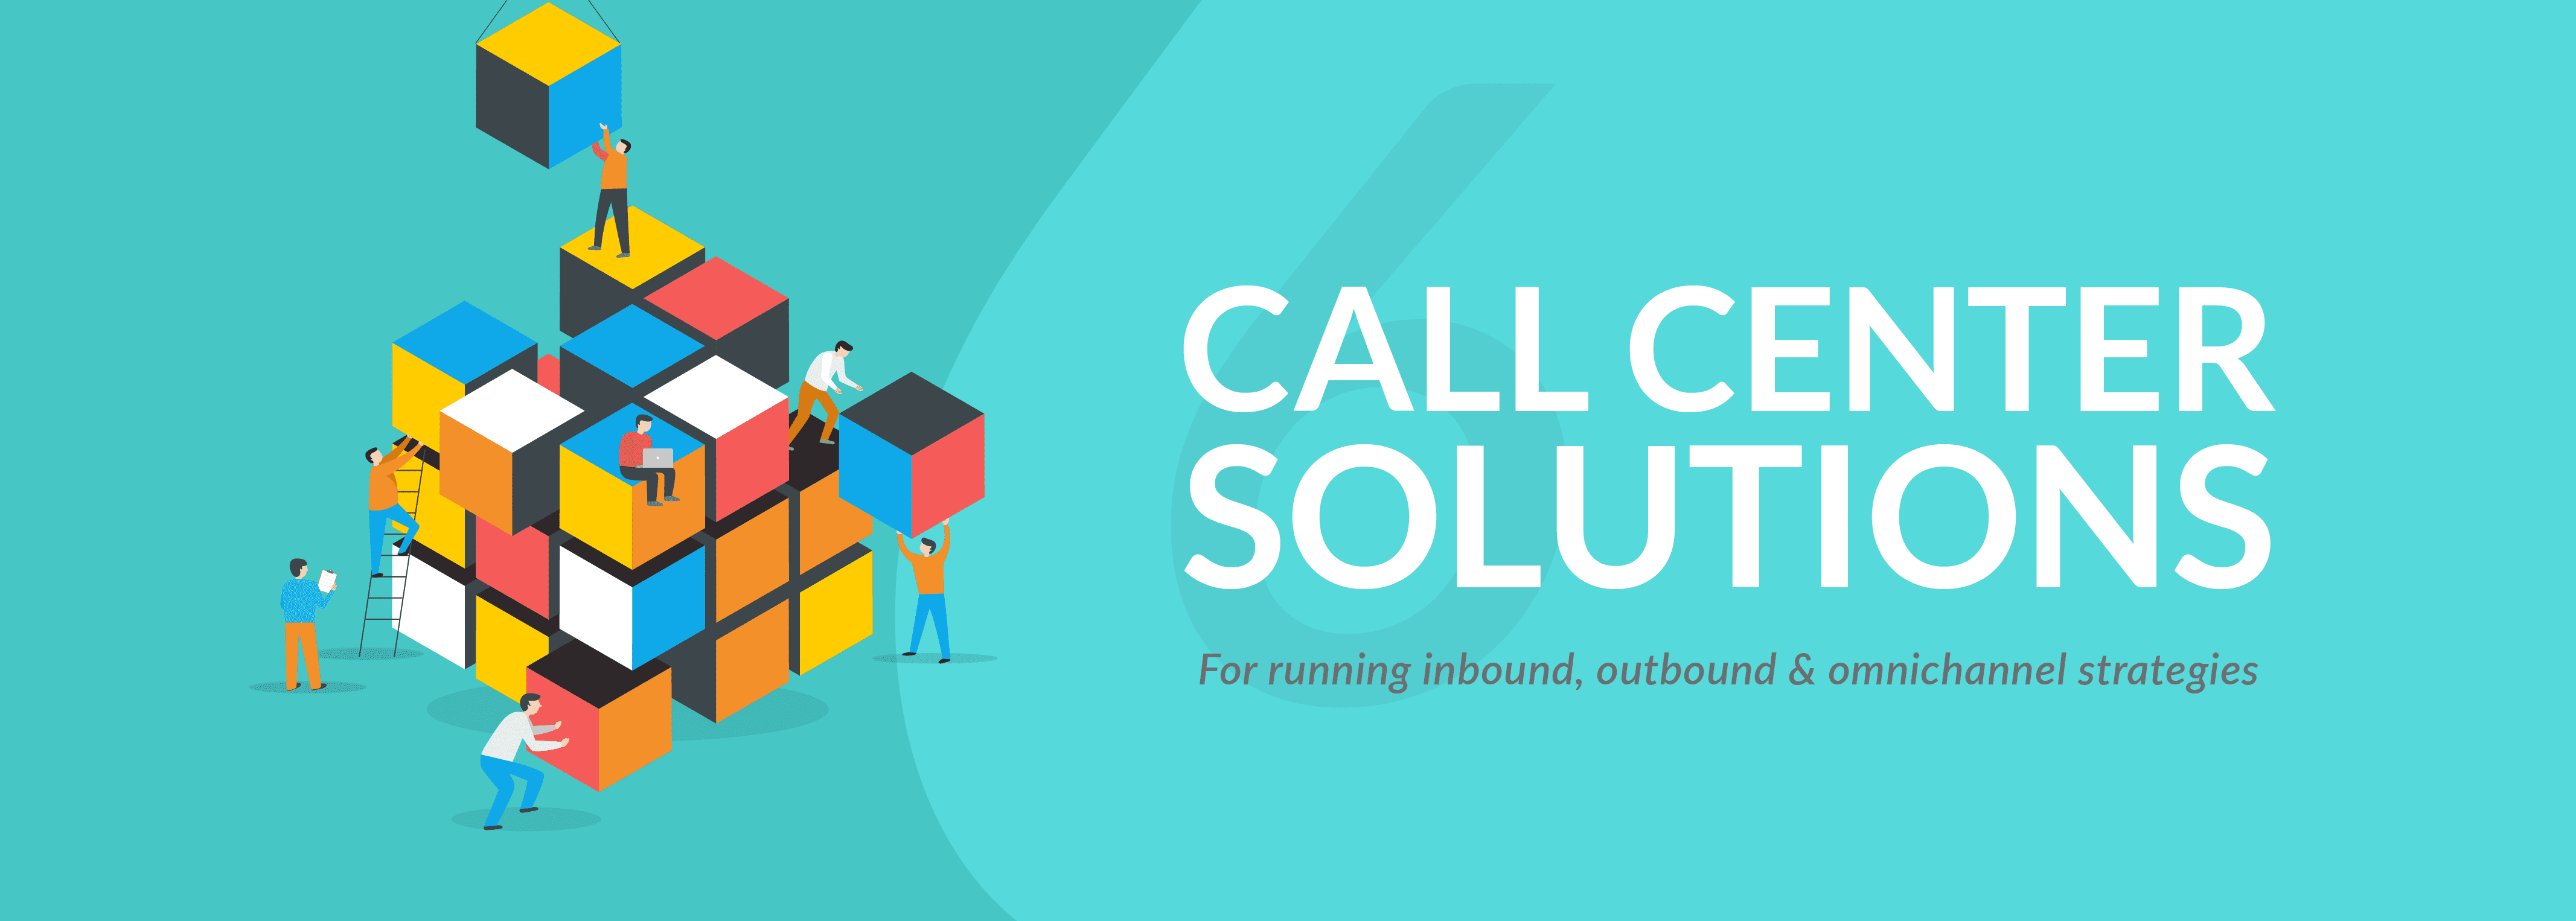 call center software, inbound call center, customer service